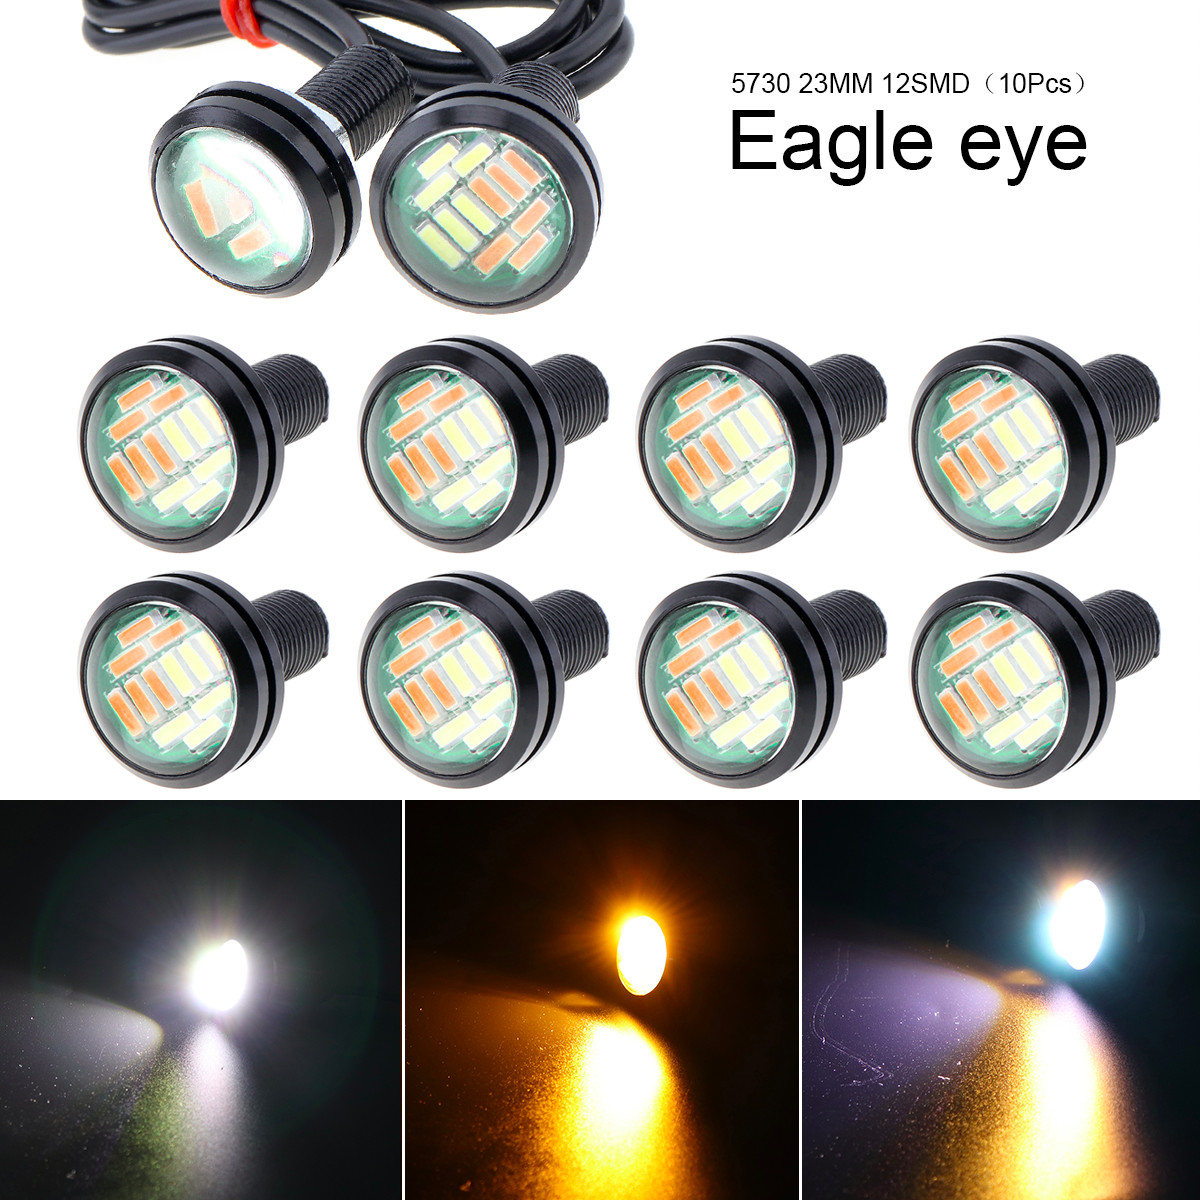 Electric Vehicle Parts 10pcs Waterproof 18mm 9w Cob White Led Eagle Eye Car Fog Drl Turn Signal Light Be Friendly In Use Atv,rv,boat & Other Vehicle